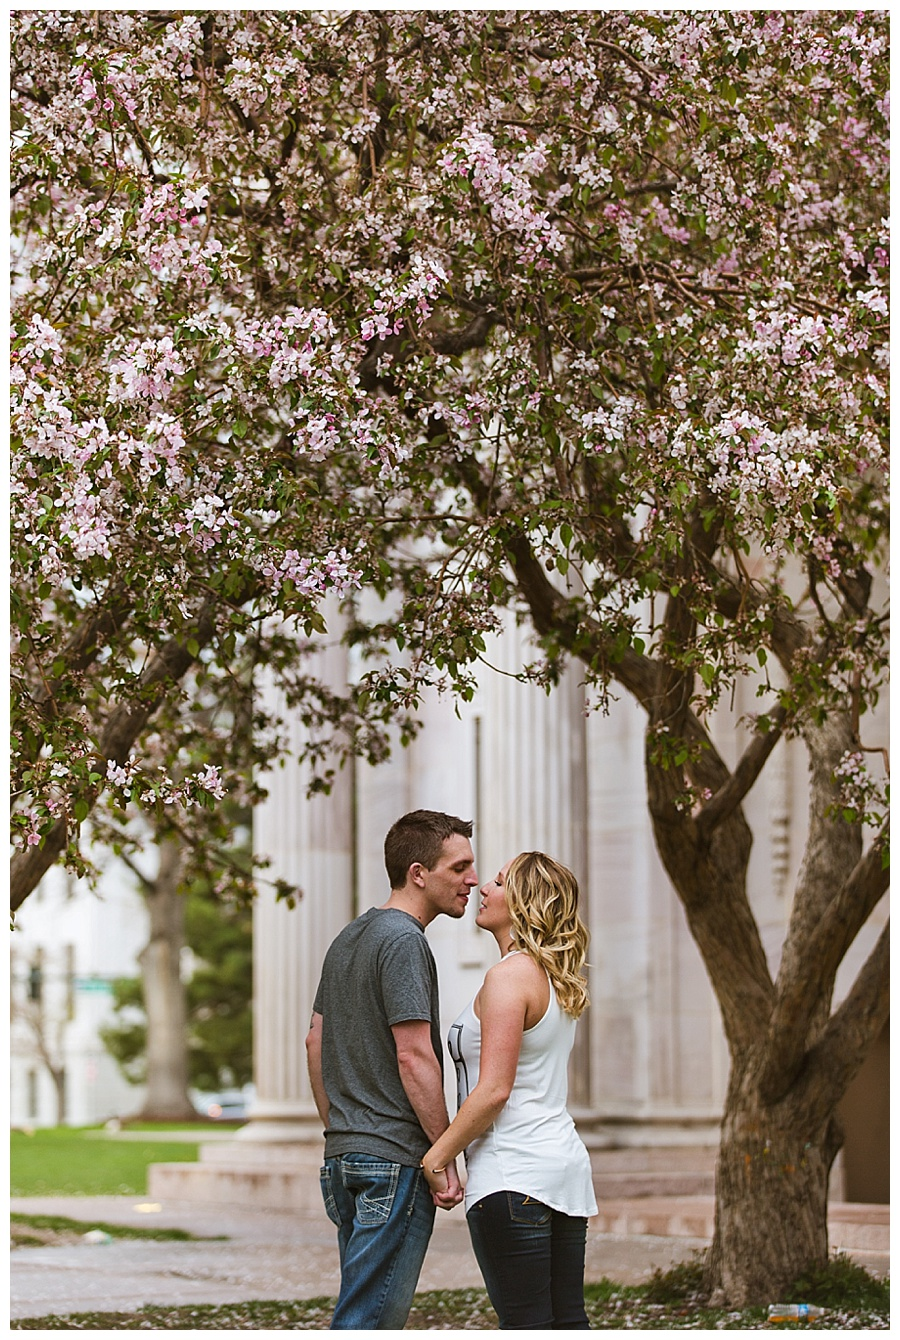 01 Downtown Denver engagement photos with blossoming trees in the rain